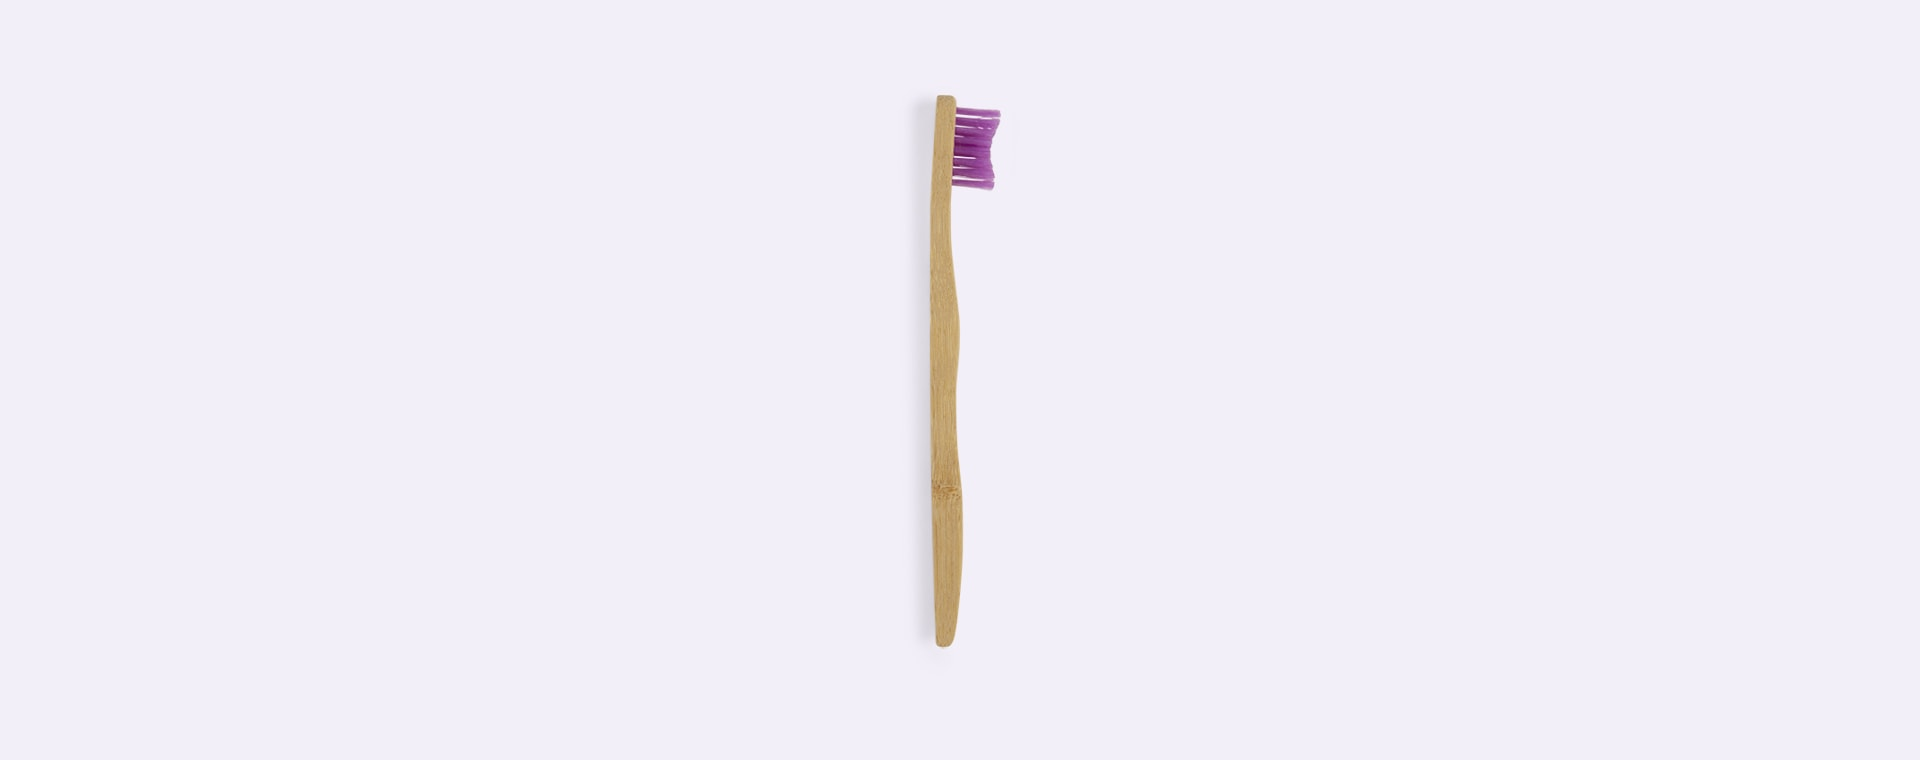 Purple The Humble Co. Toothbrush